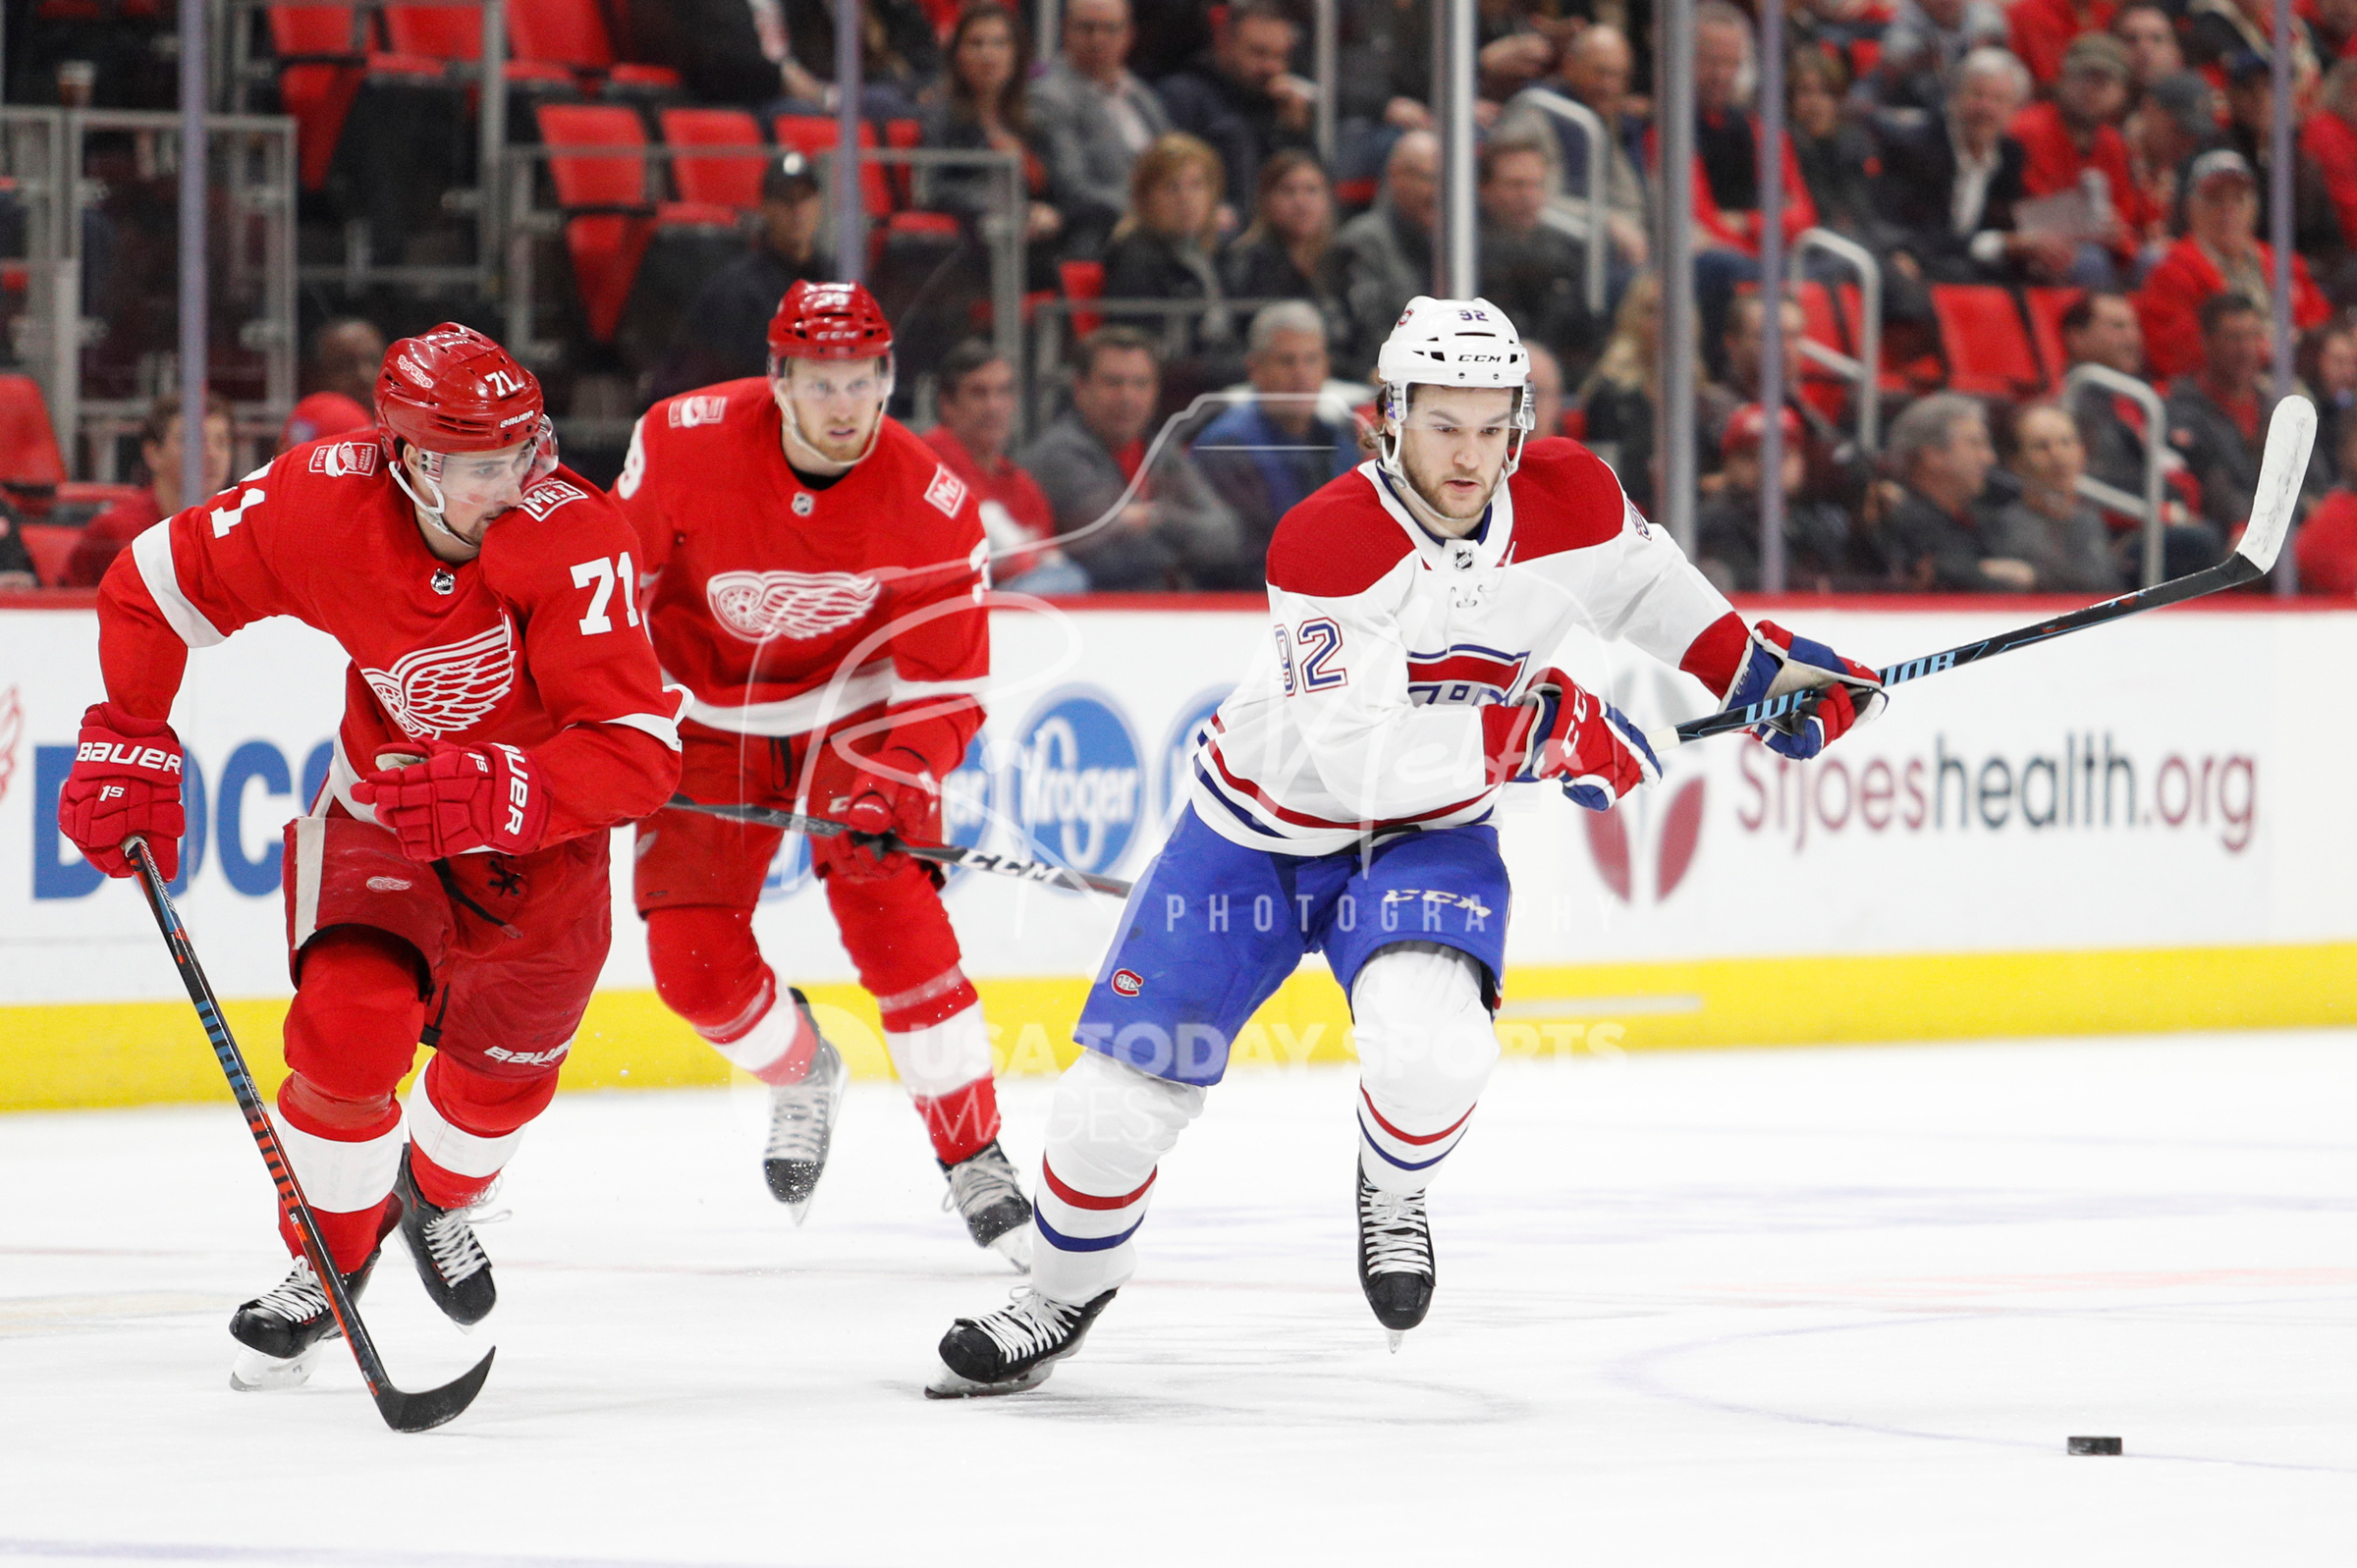 Apr 5, 2018; Detroit, MI, USA; Montreal Canadiens center Jonathan Drouin (92) and Detroit Red Wings center Dylan Larkin (71) skate toward the puck during the first period at Little Caesars Arena. Mandatory Credit: Raj Mehta-USA TODAY Sports